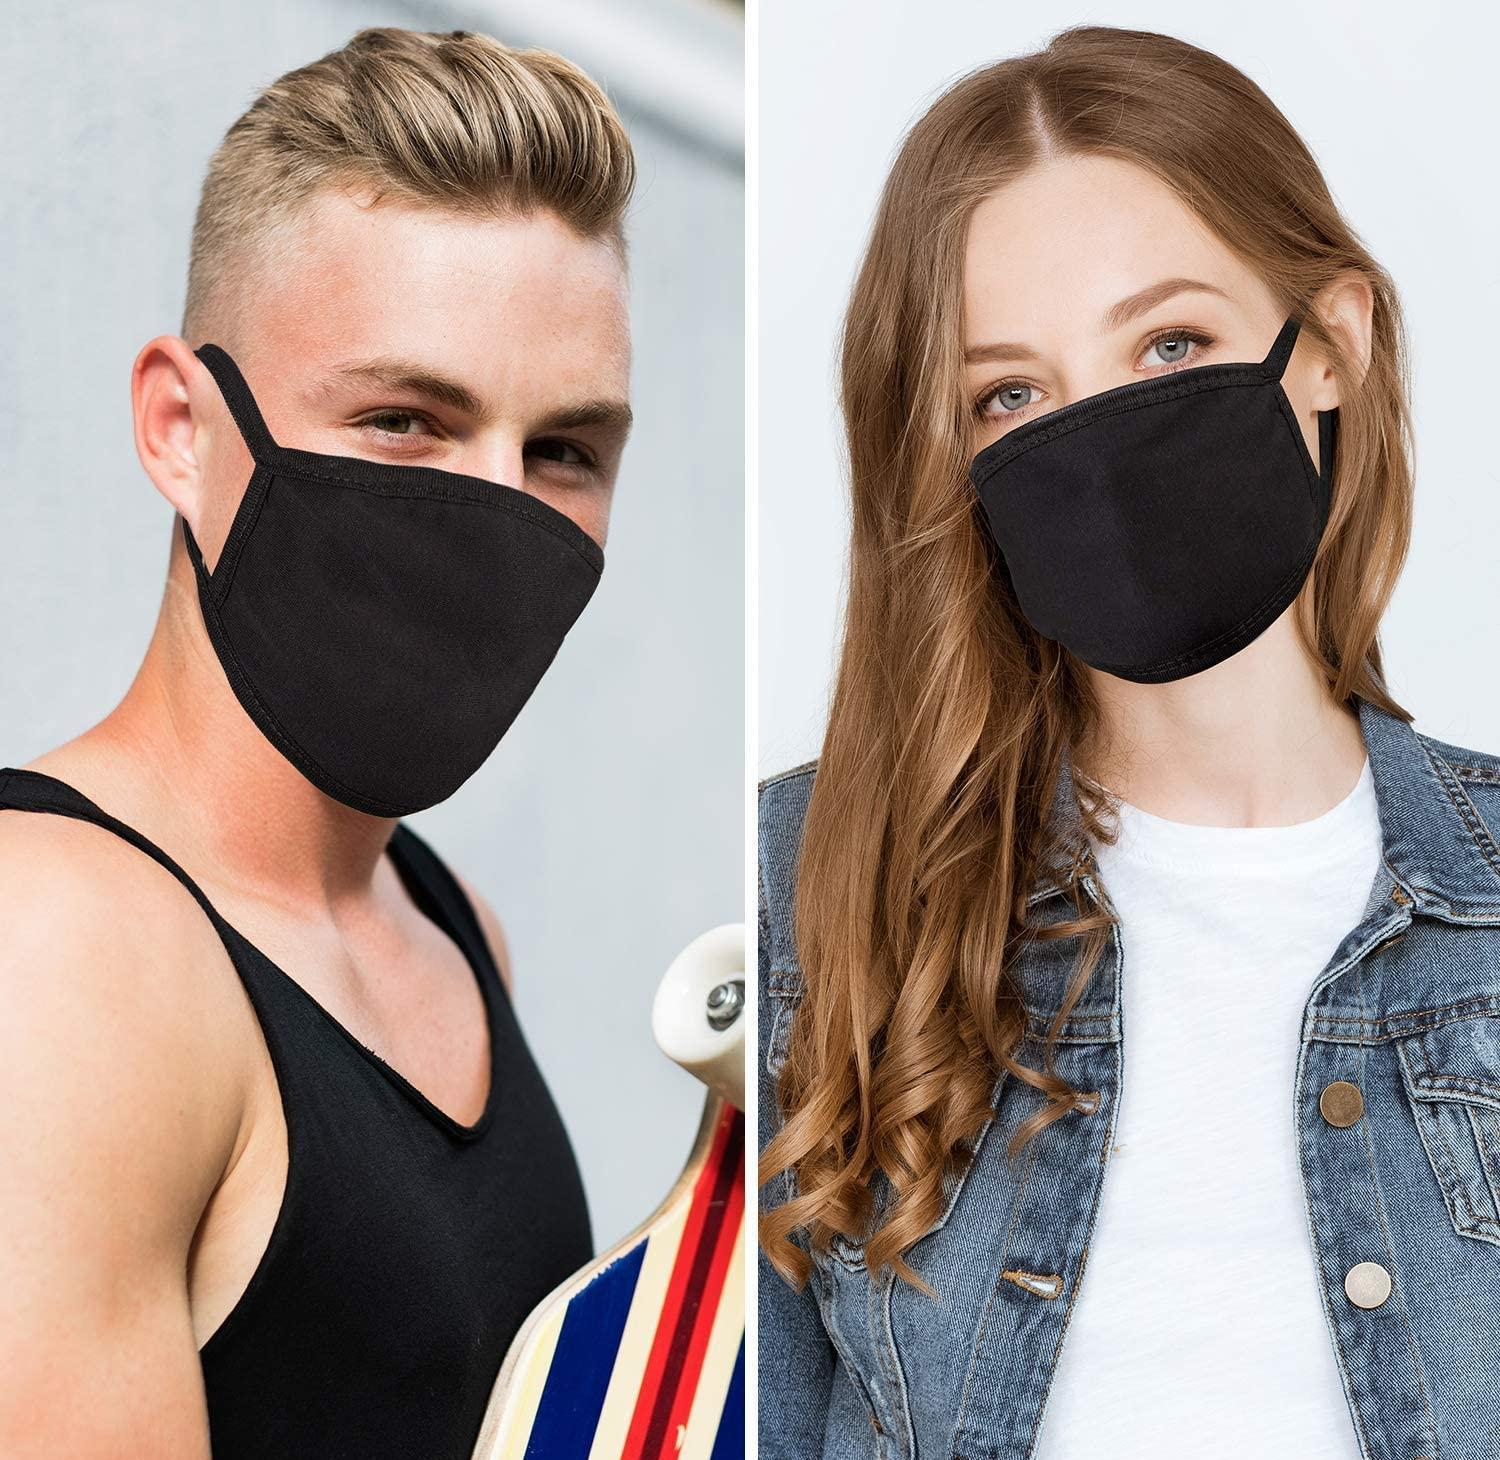 Camping Masks Face Reusable Fashion Travel Reusable Mask Unisex Mask Masks Cycling Men Black For Anime Washable For mXQXB hotstore2010